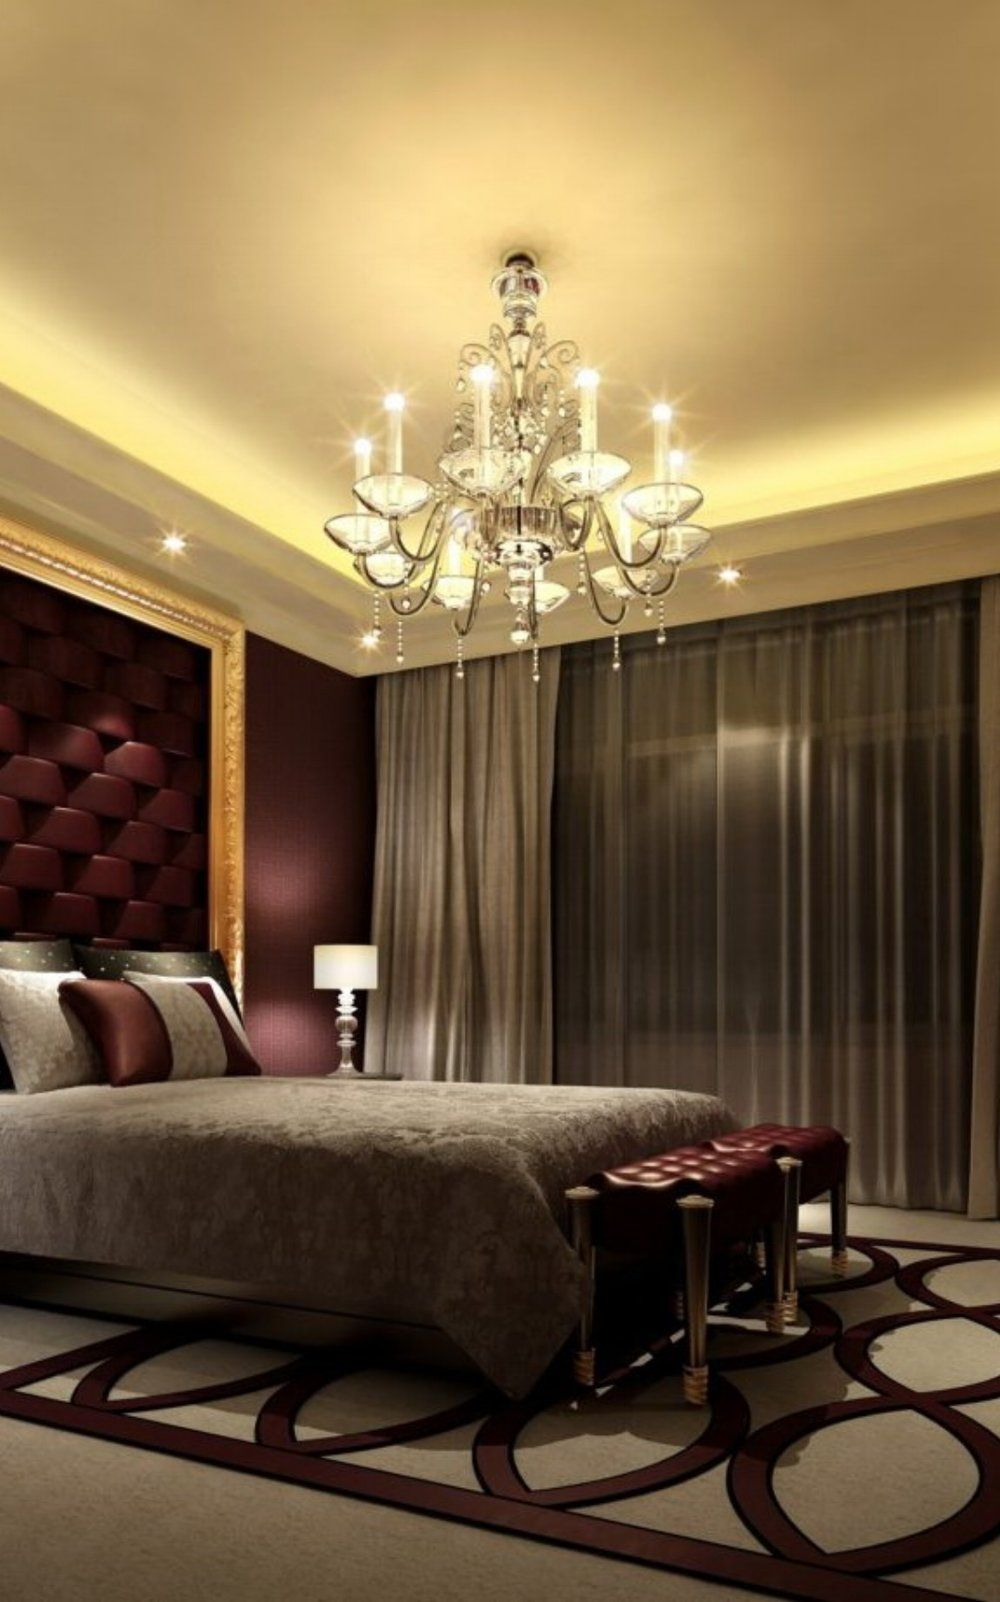 Hot Modern Clic Bedroom Interior And Bedrooms